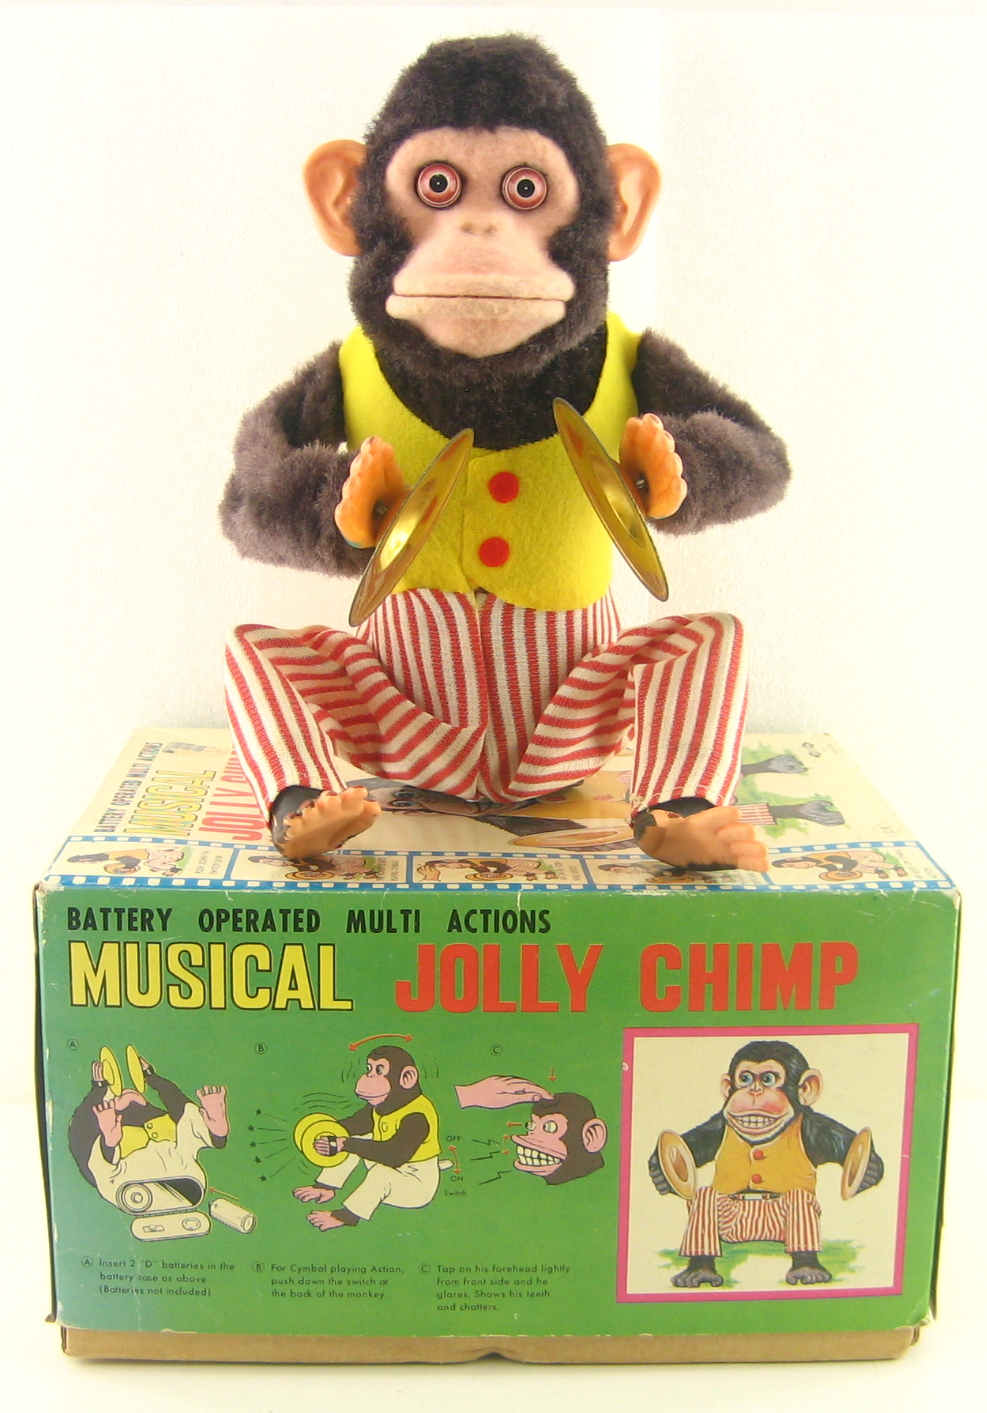 Jolly Chimp - facing